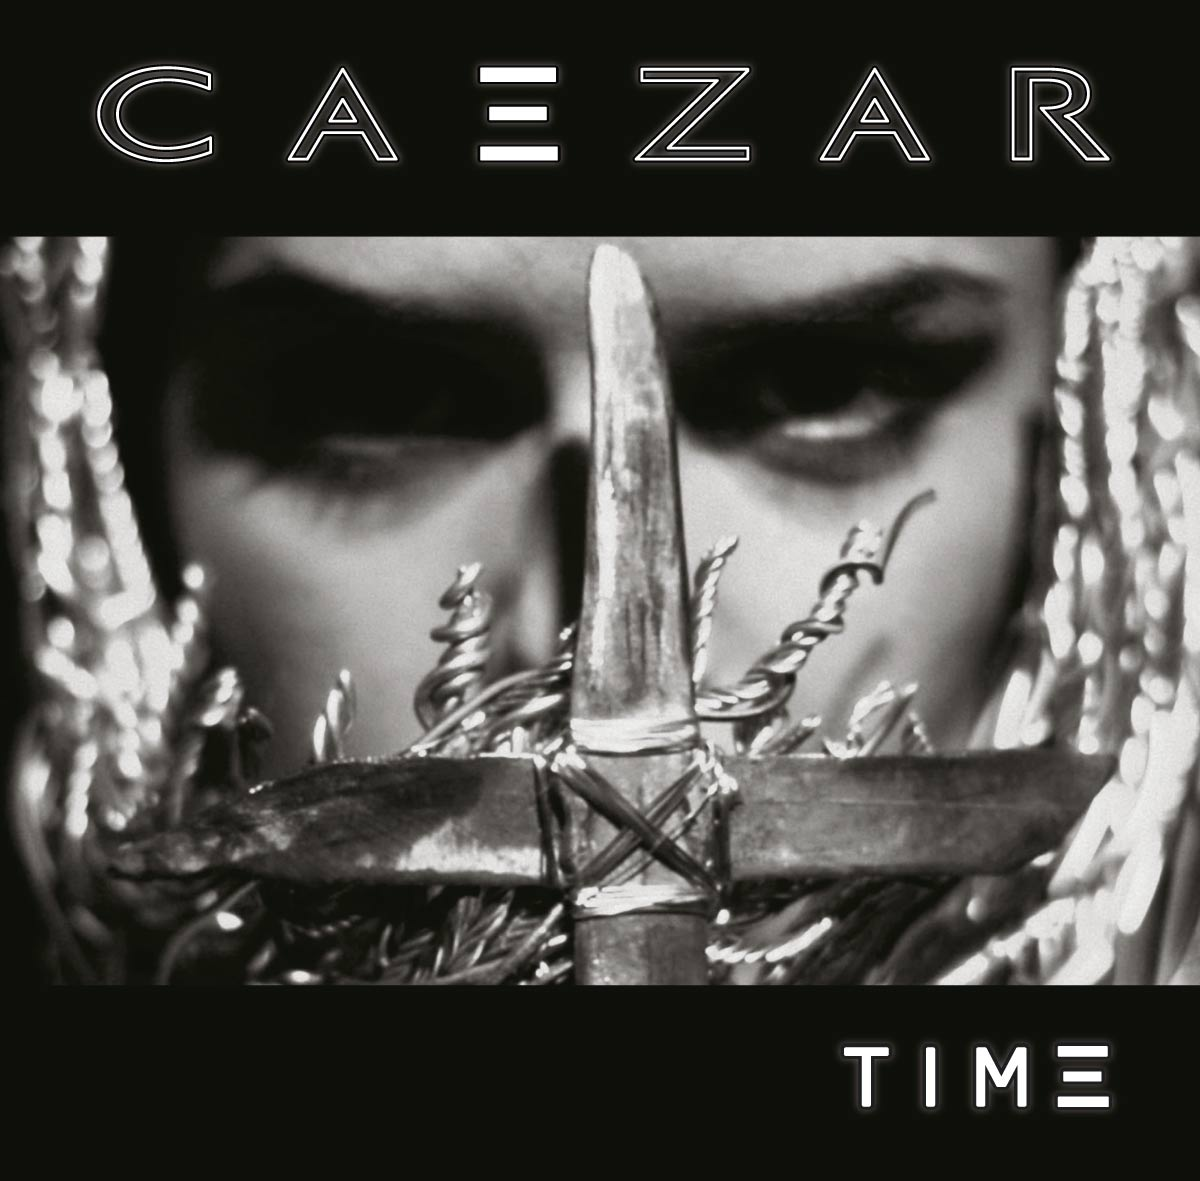 Caezar's debut album cover featuring a still from the video.